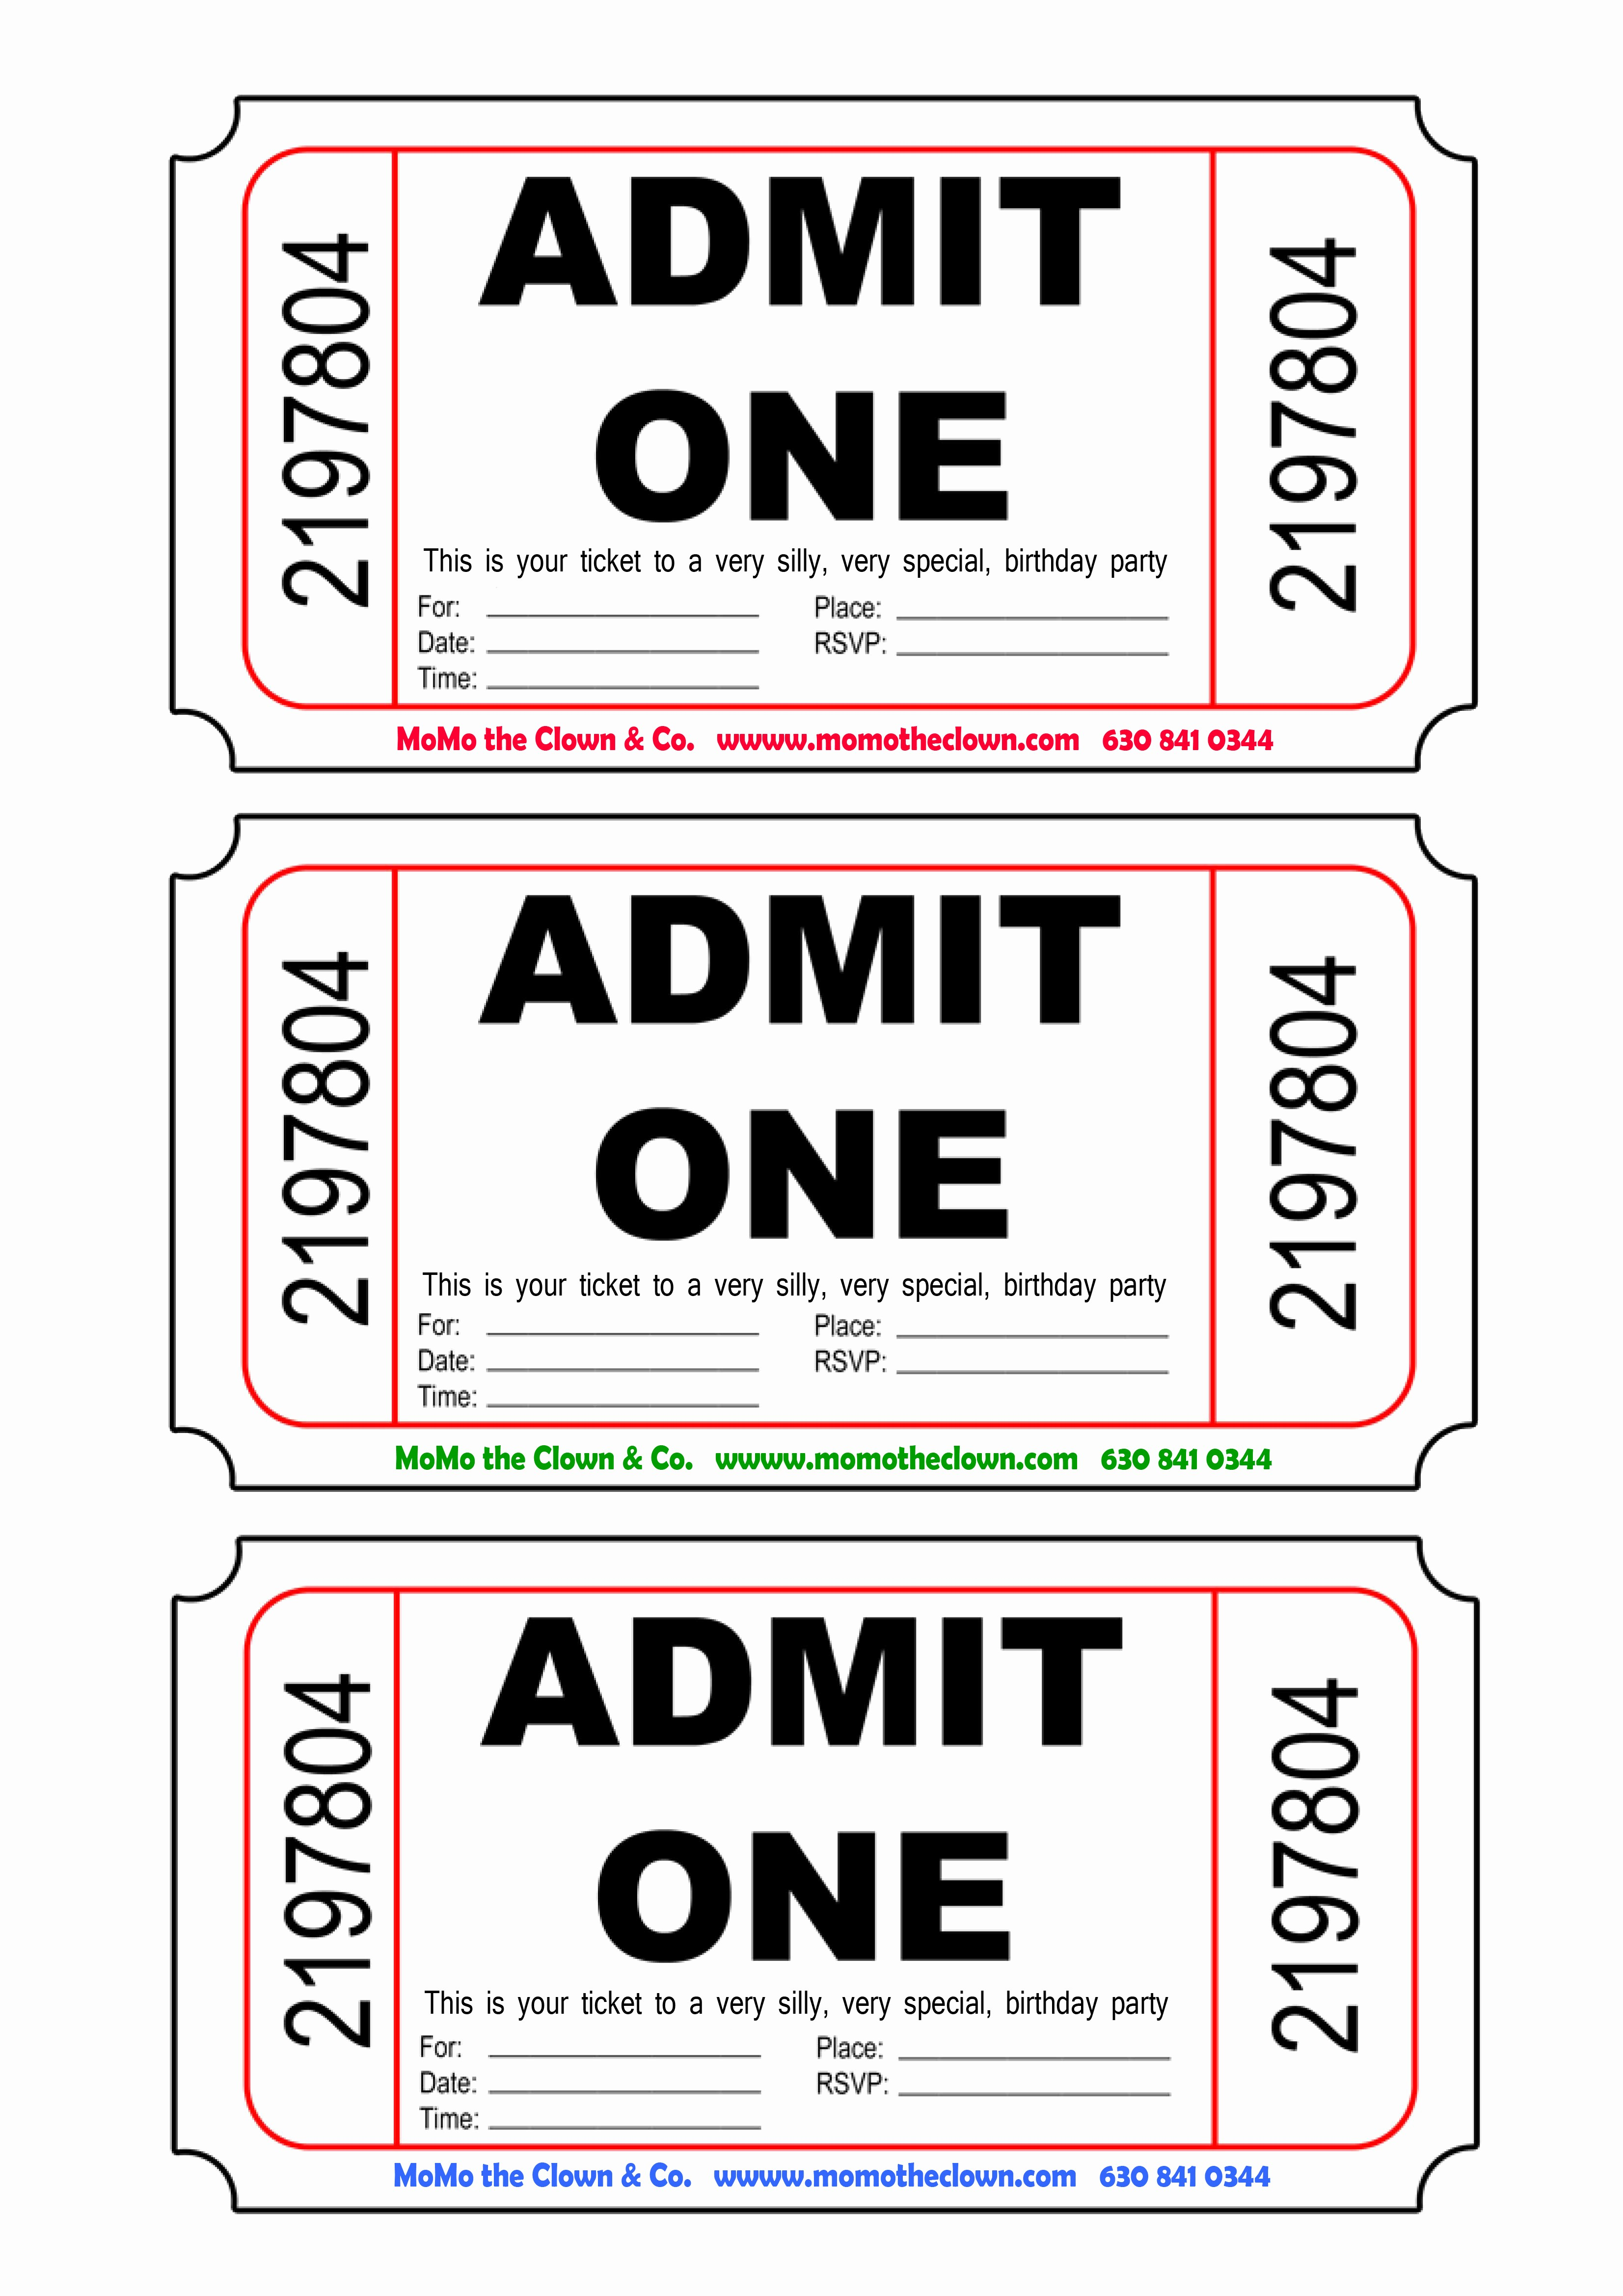 Admit One Ticket Invitation Template Best Of Super Admit E Party Invitations Mn55